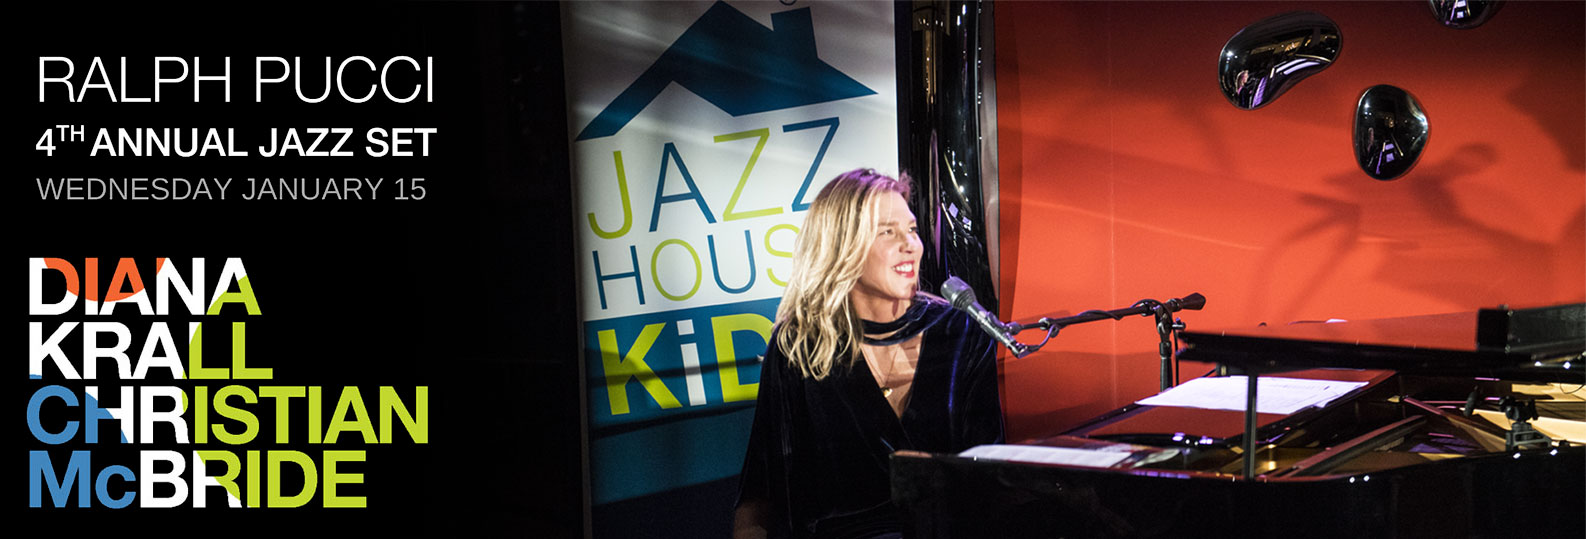 Recap of Ralph Pucci 4th Annual Jazz Set featuring Diana Krall and Christian McBride